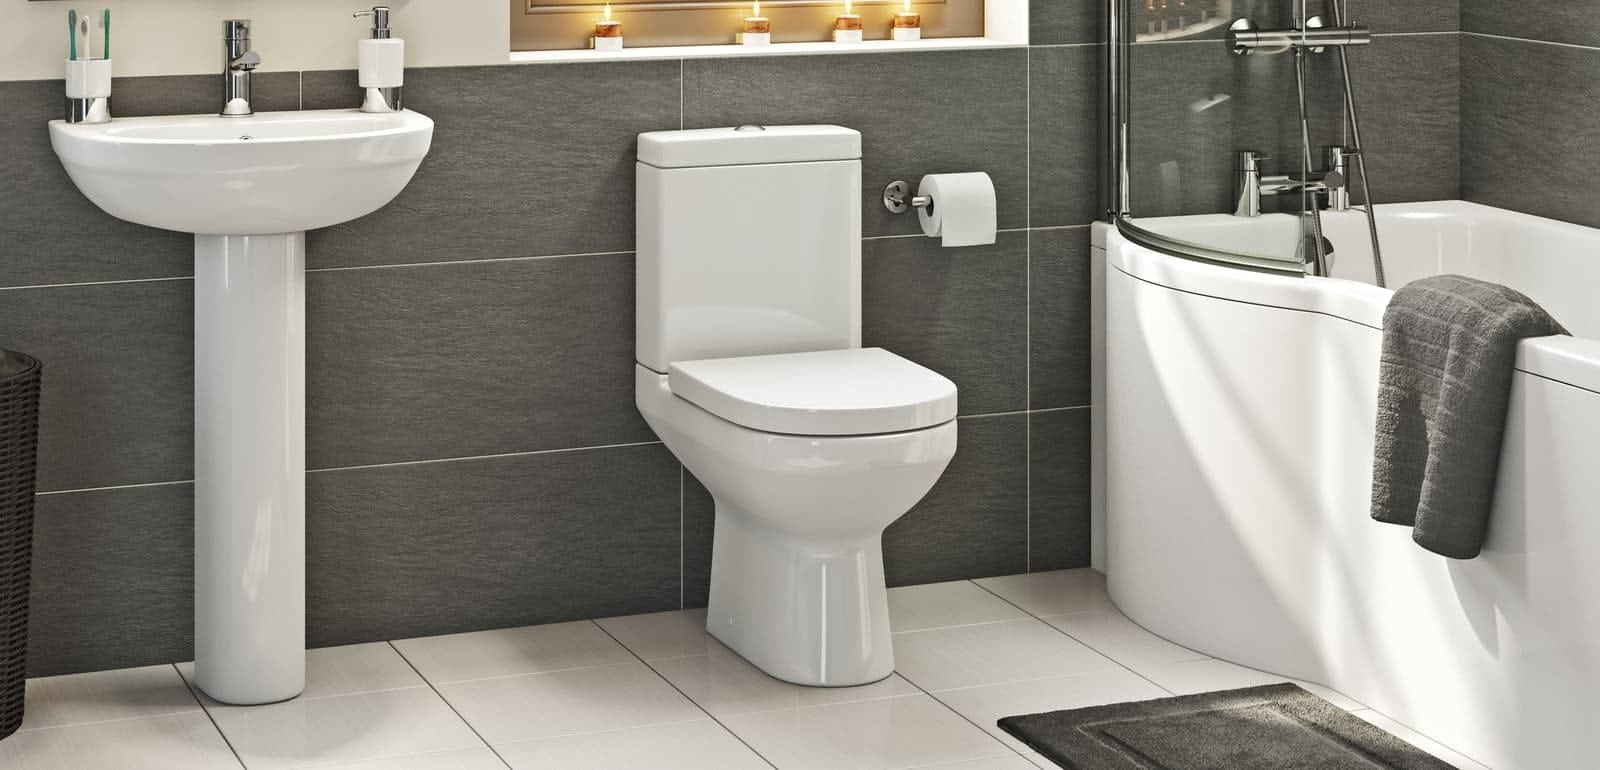 Little Bathroom Victories: How to unblock a toilet